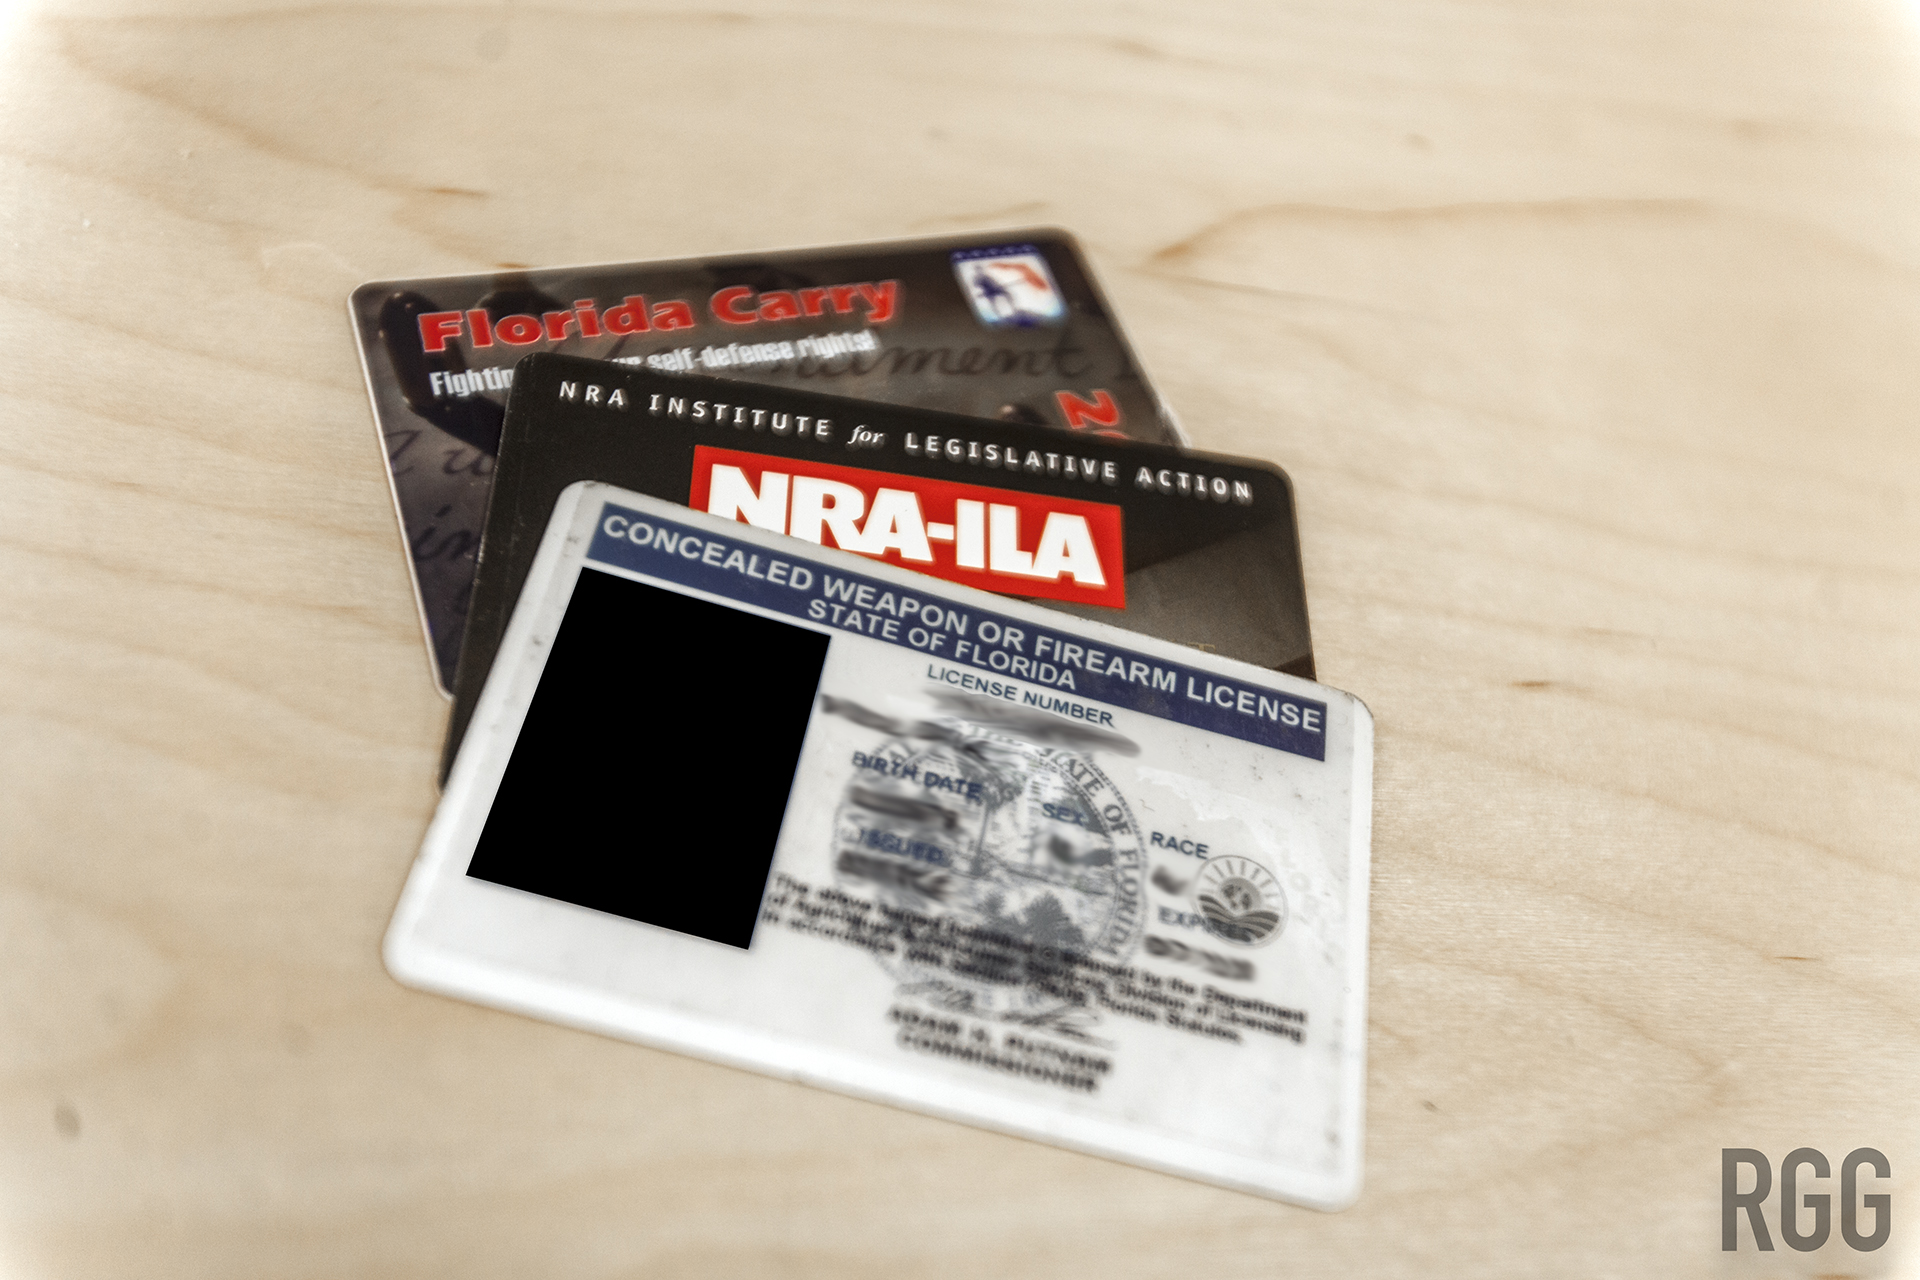 A concealed weapon or firearm license from the State of Florida